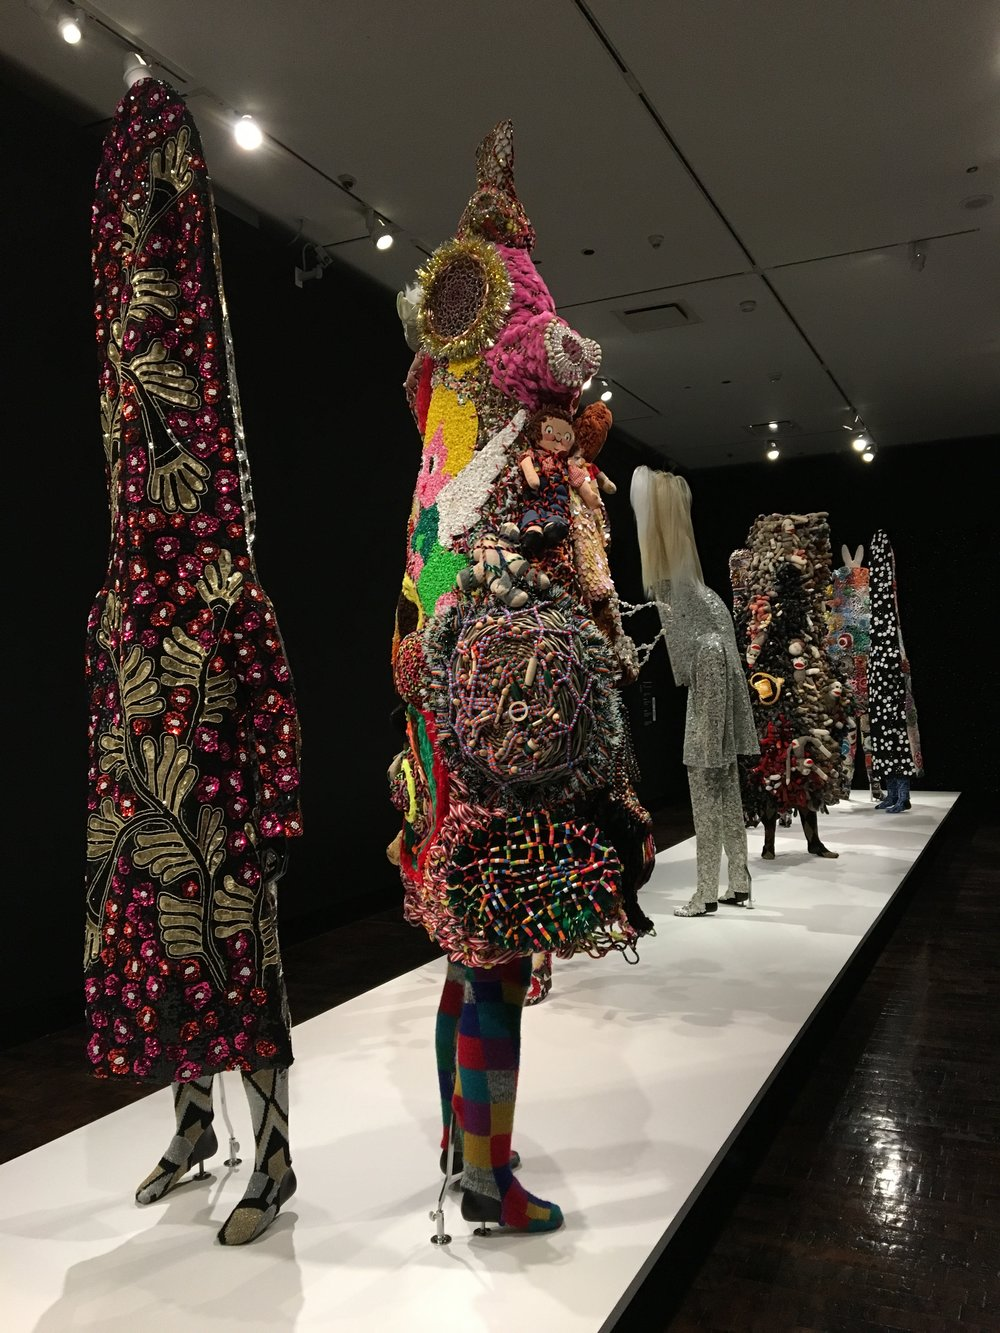 Nick Cave,  Soundsuit , mixed media, all soundsuits on display created between 2010-2017.  Nick Cave,  Architectural Archway (Button Walls) , 2013, mixed media.